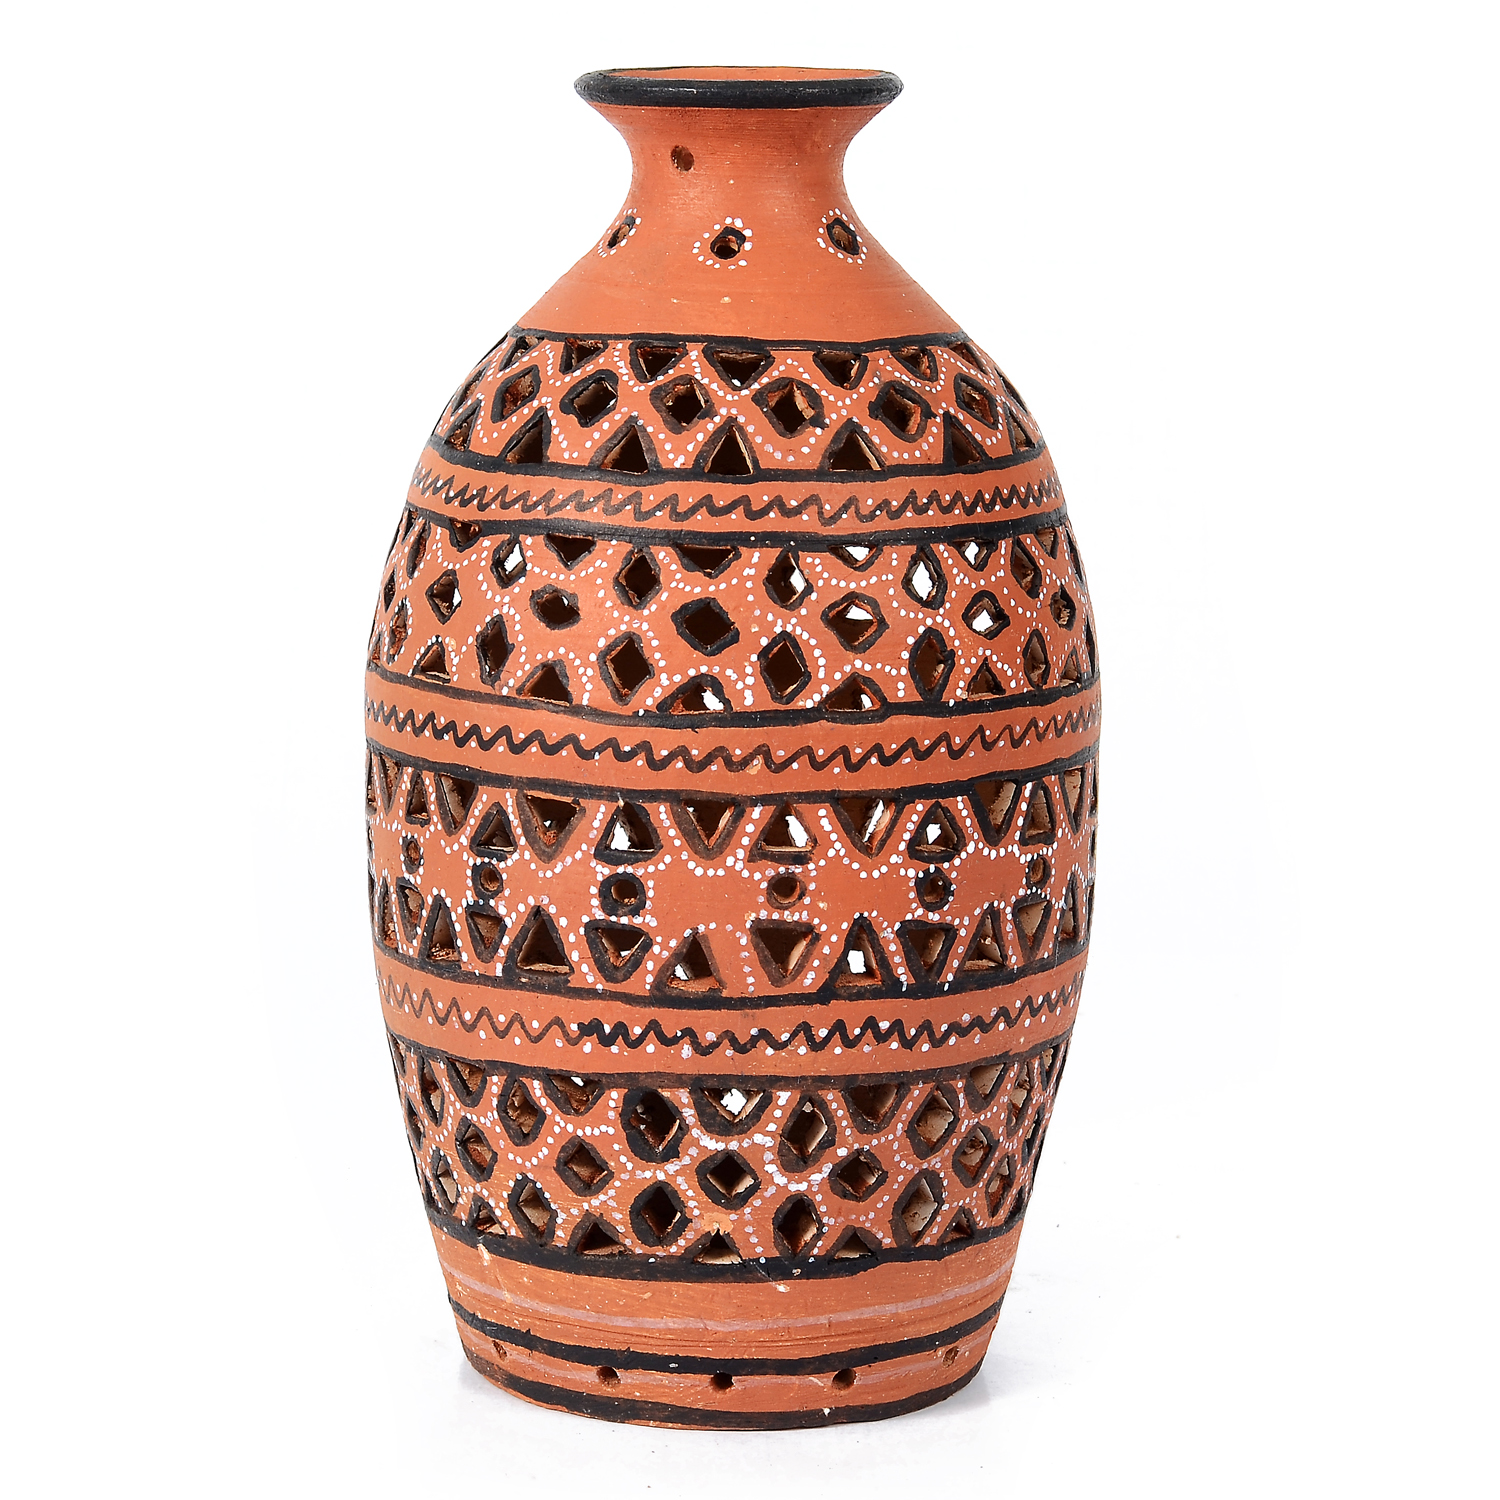 dawn of pottery in india multiply thanks to new range of products available online the pottery art is now no longer limited to having only few items to offer your home decor